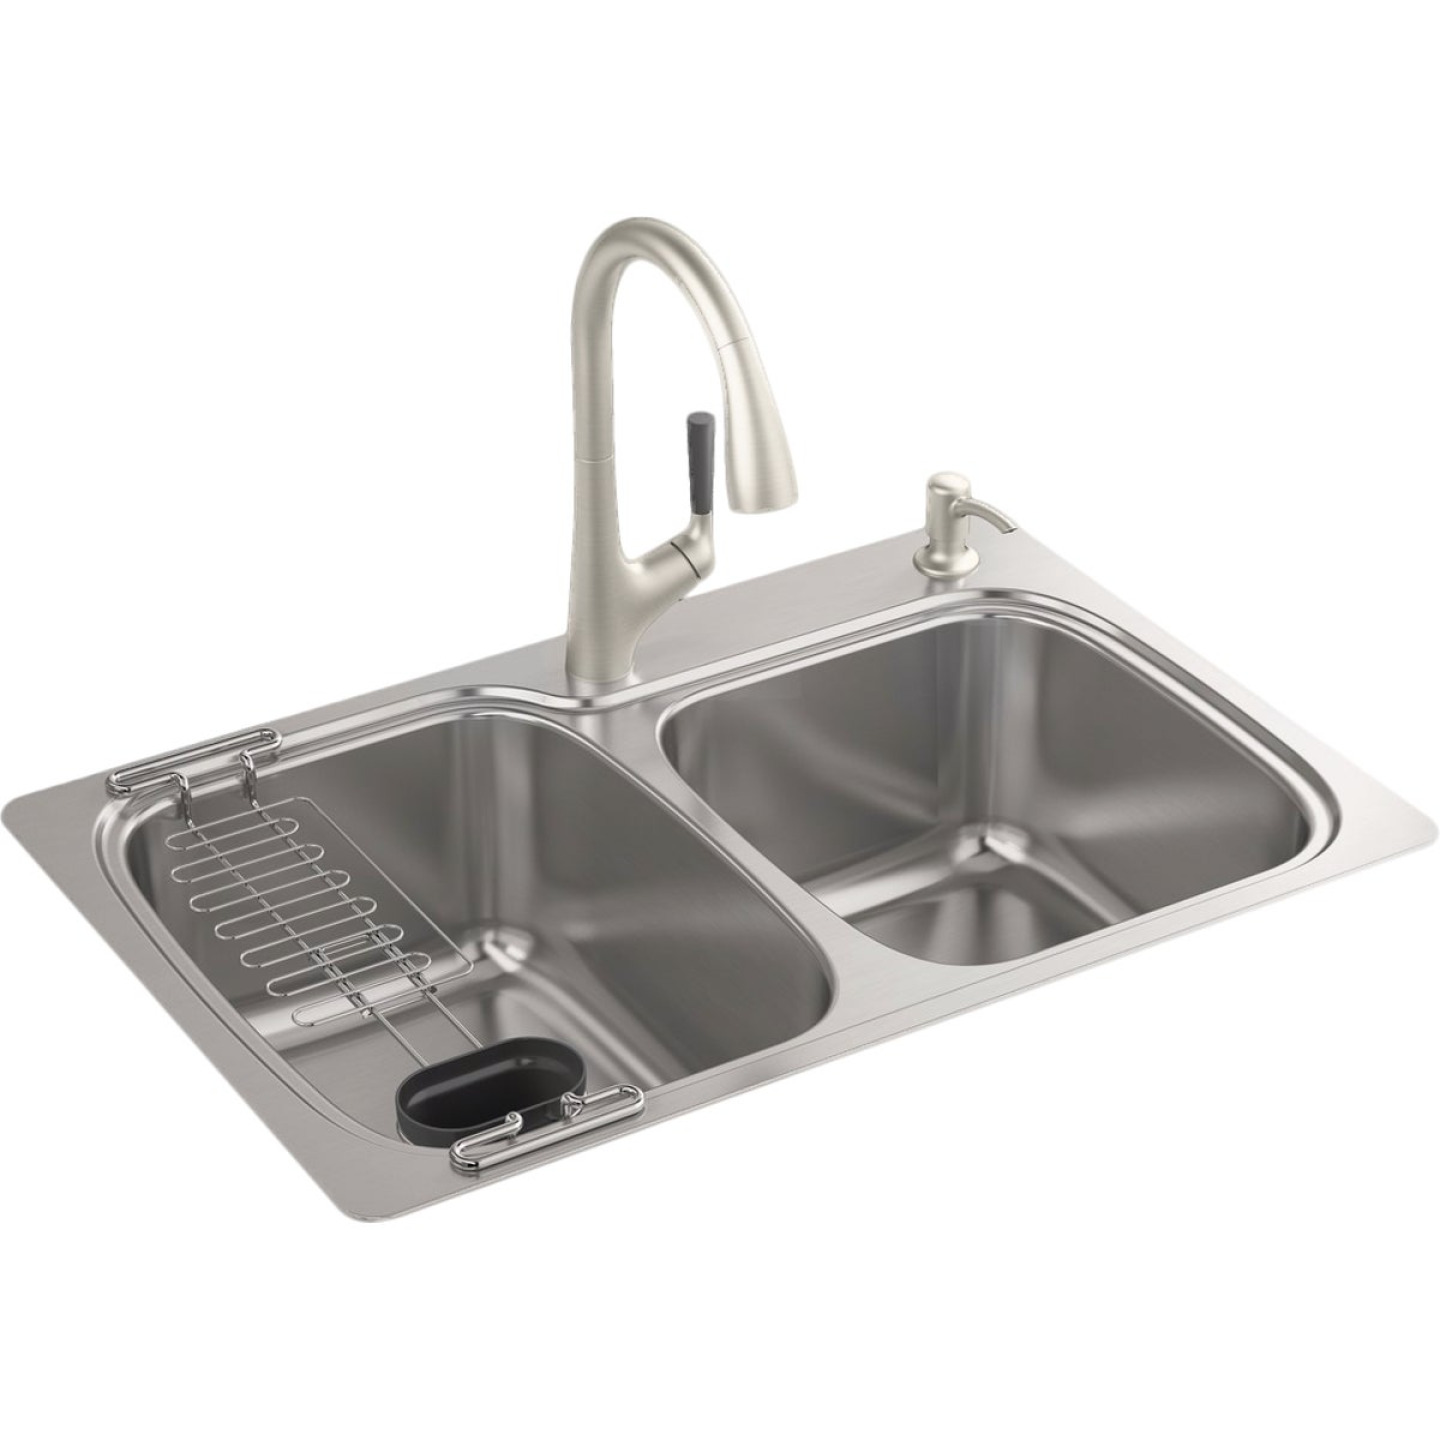 Kohler All-in-One Double Bowl 33 In. x 22 In. x 9 In. Deep Stainless Steel Kitchen Sink Kit, Top/Under Mount Image 1